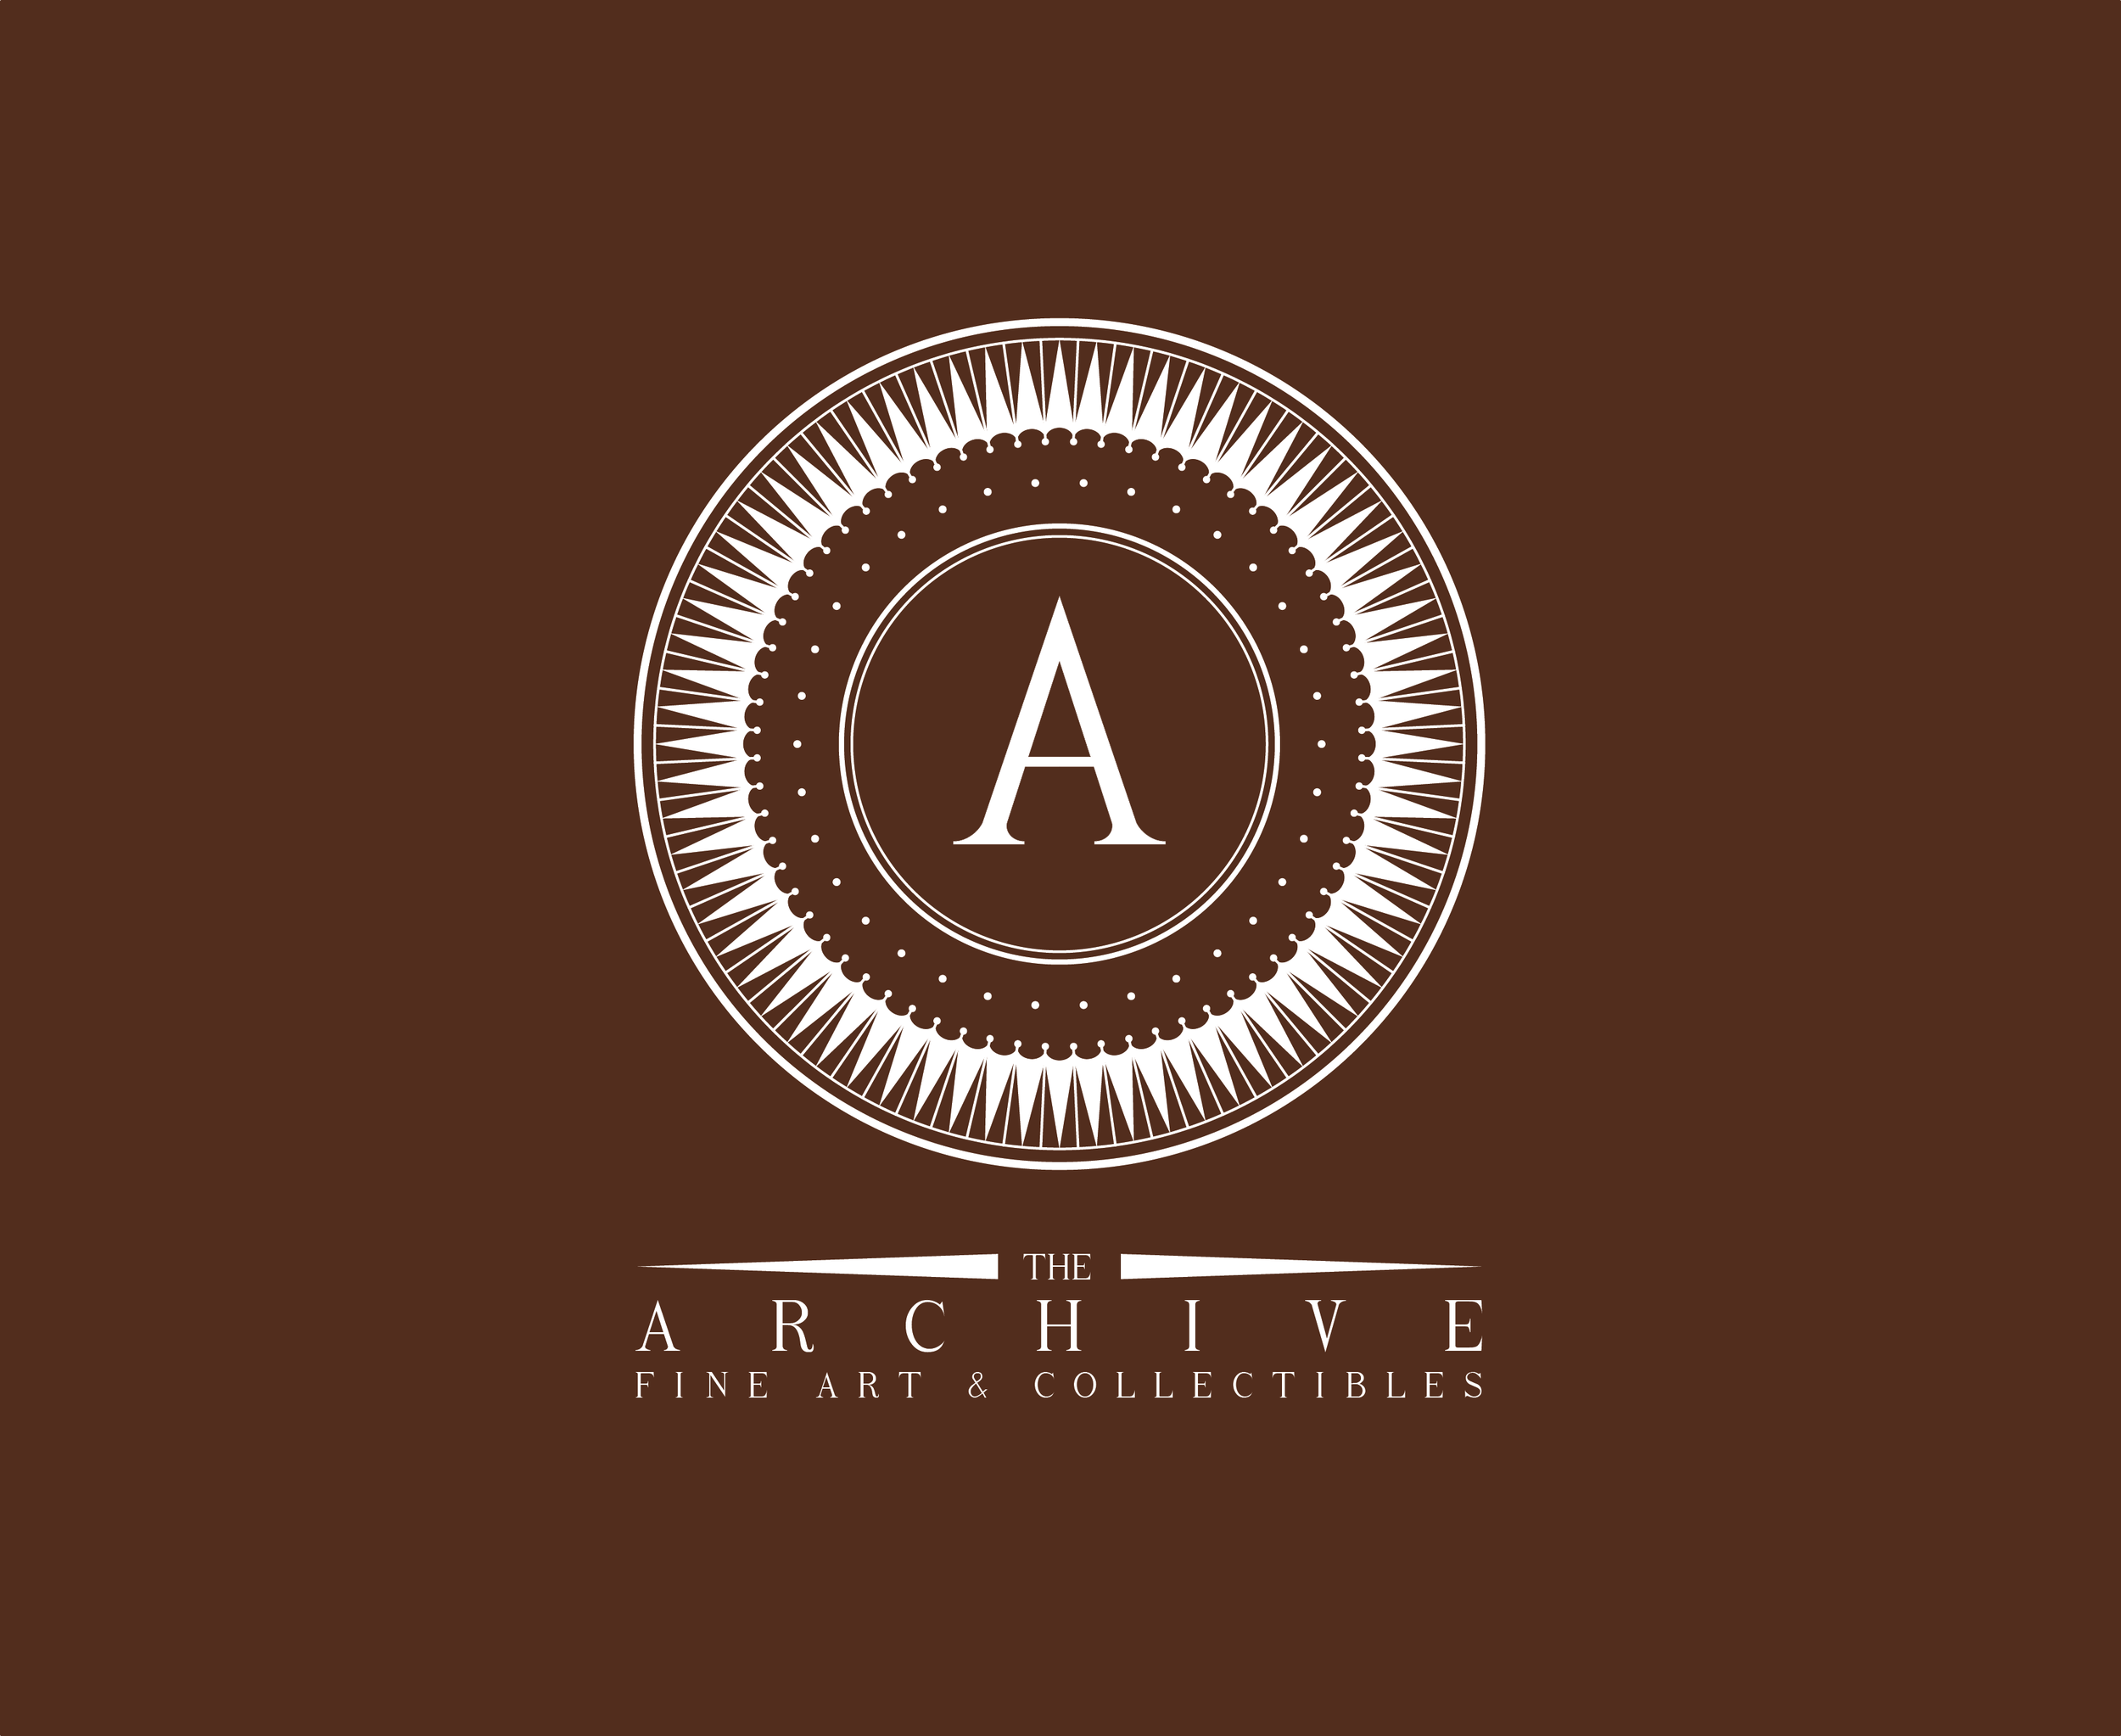 The Archive | Fine Art & Collectibles